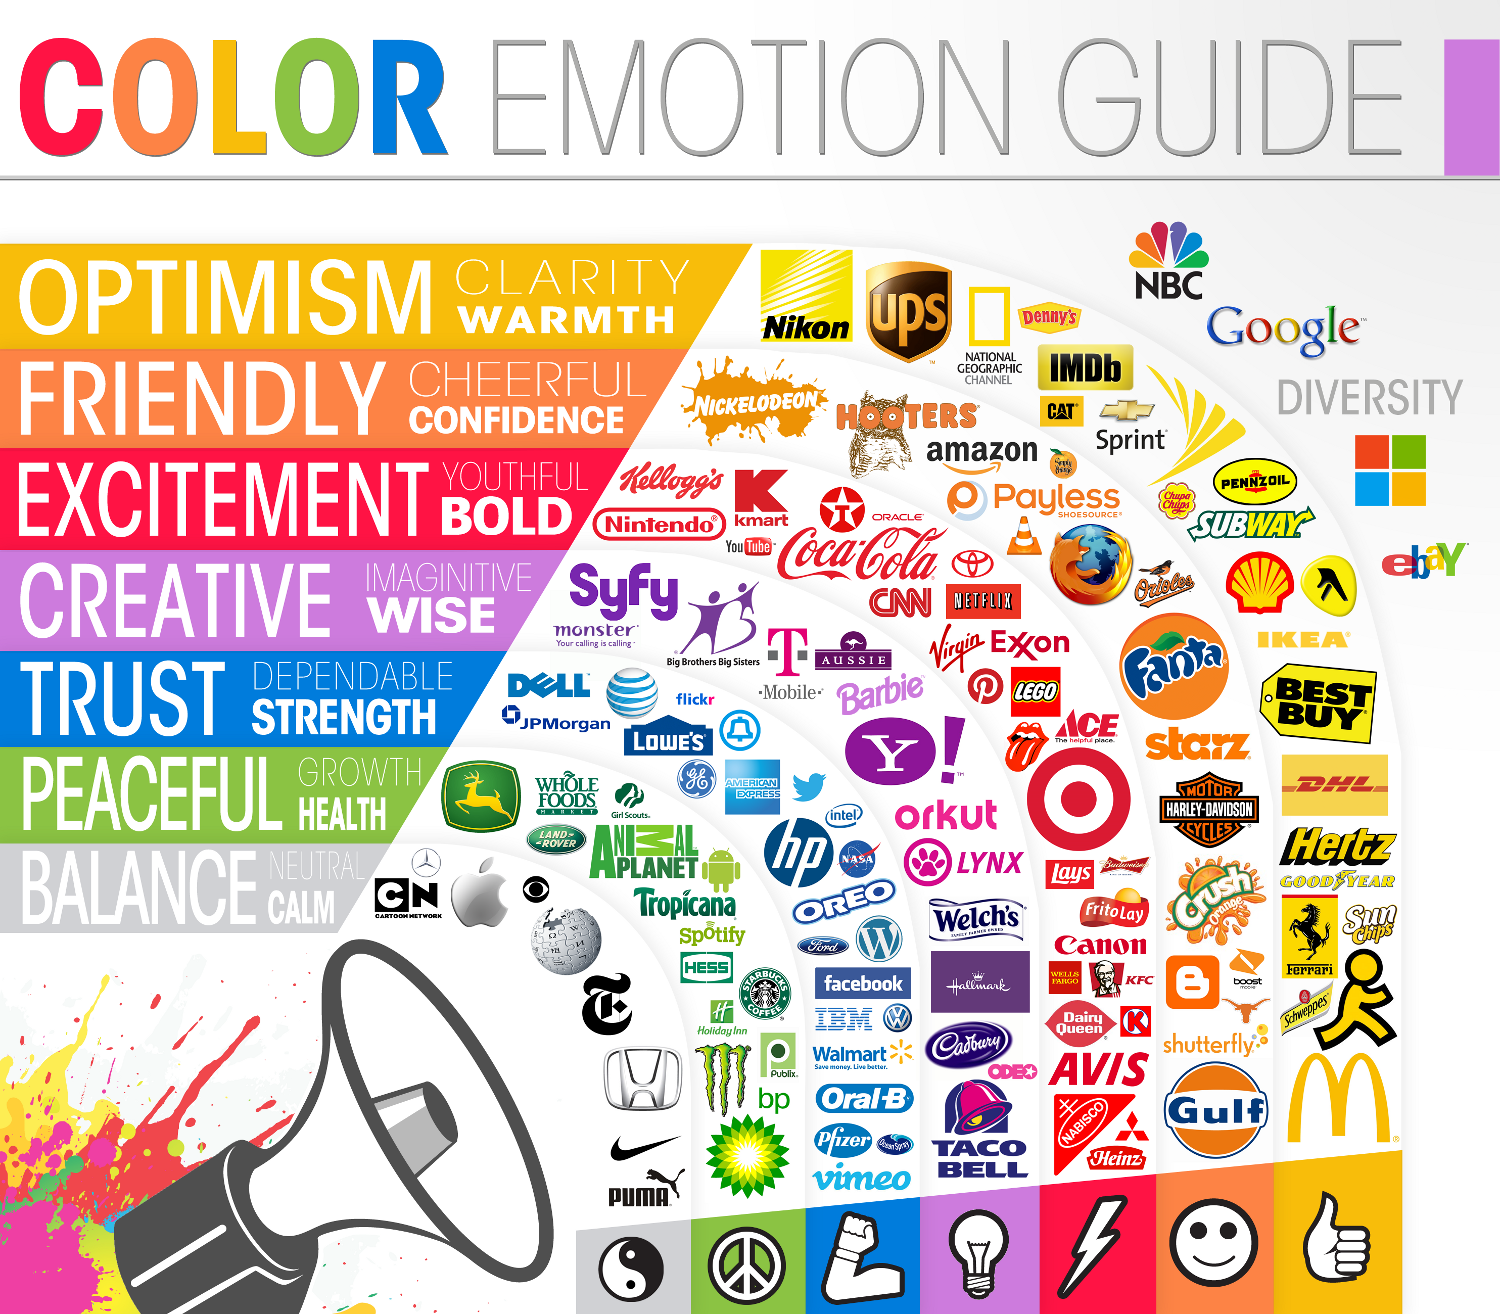 logo color emotion guide